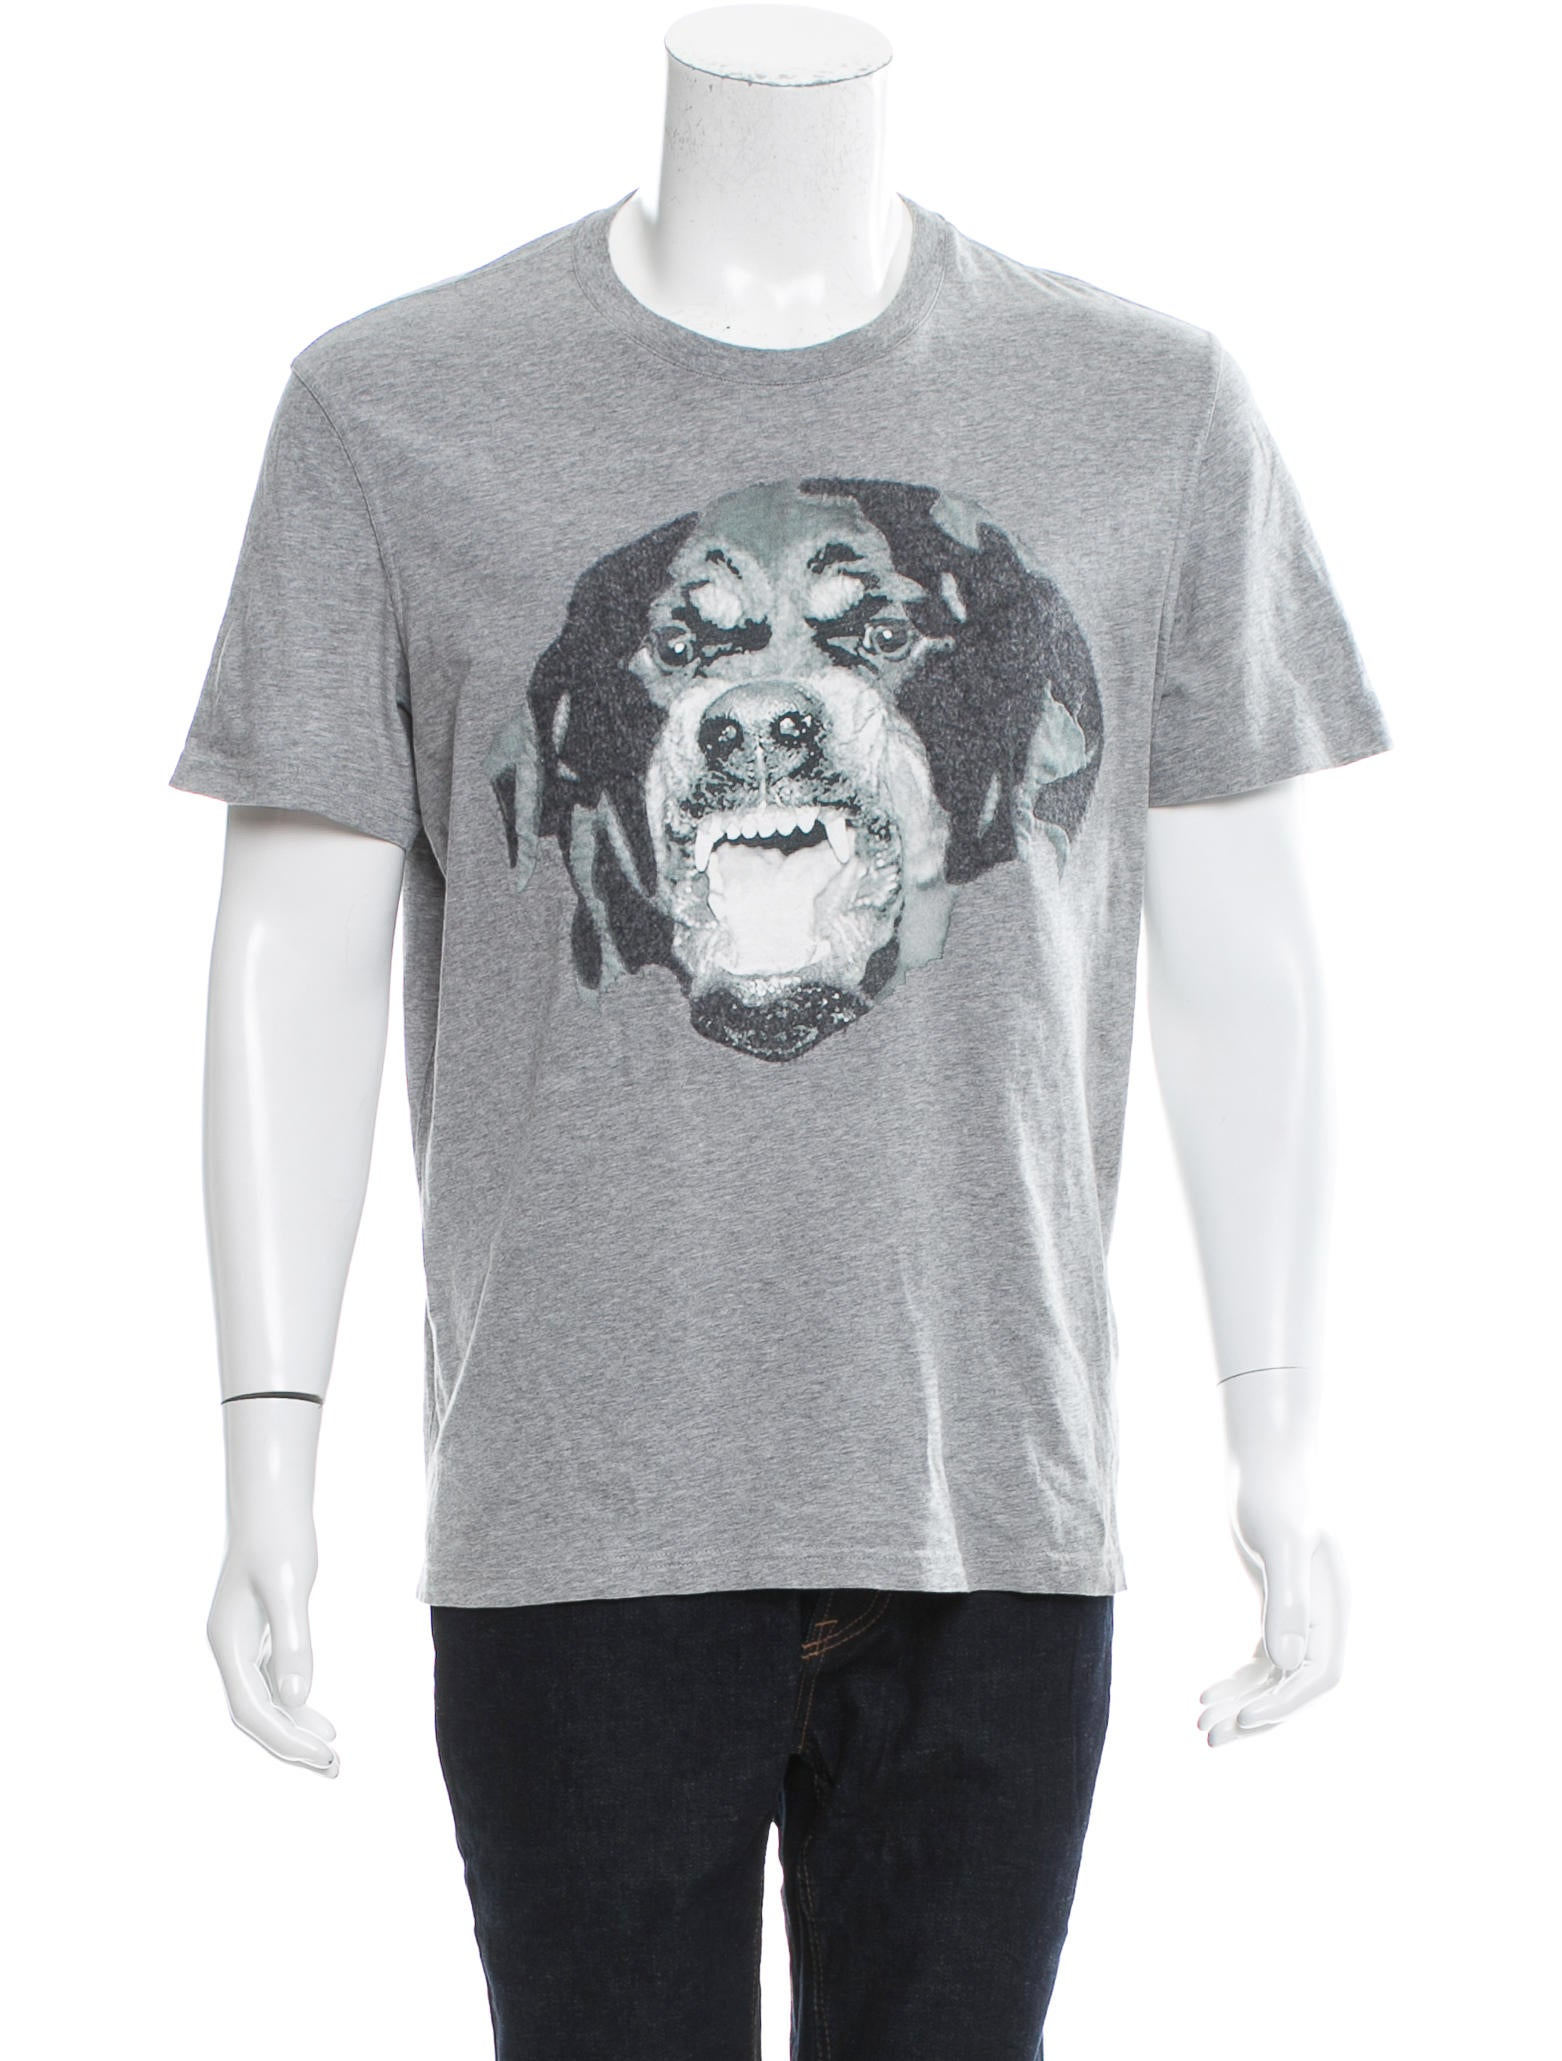 Givenchy 2016 rottweiler t shirt clothing giv40300 for Givenchy t shirts for sale